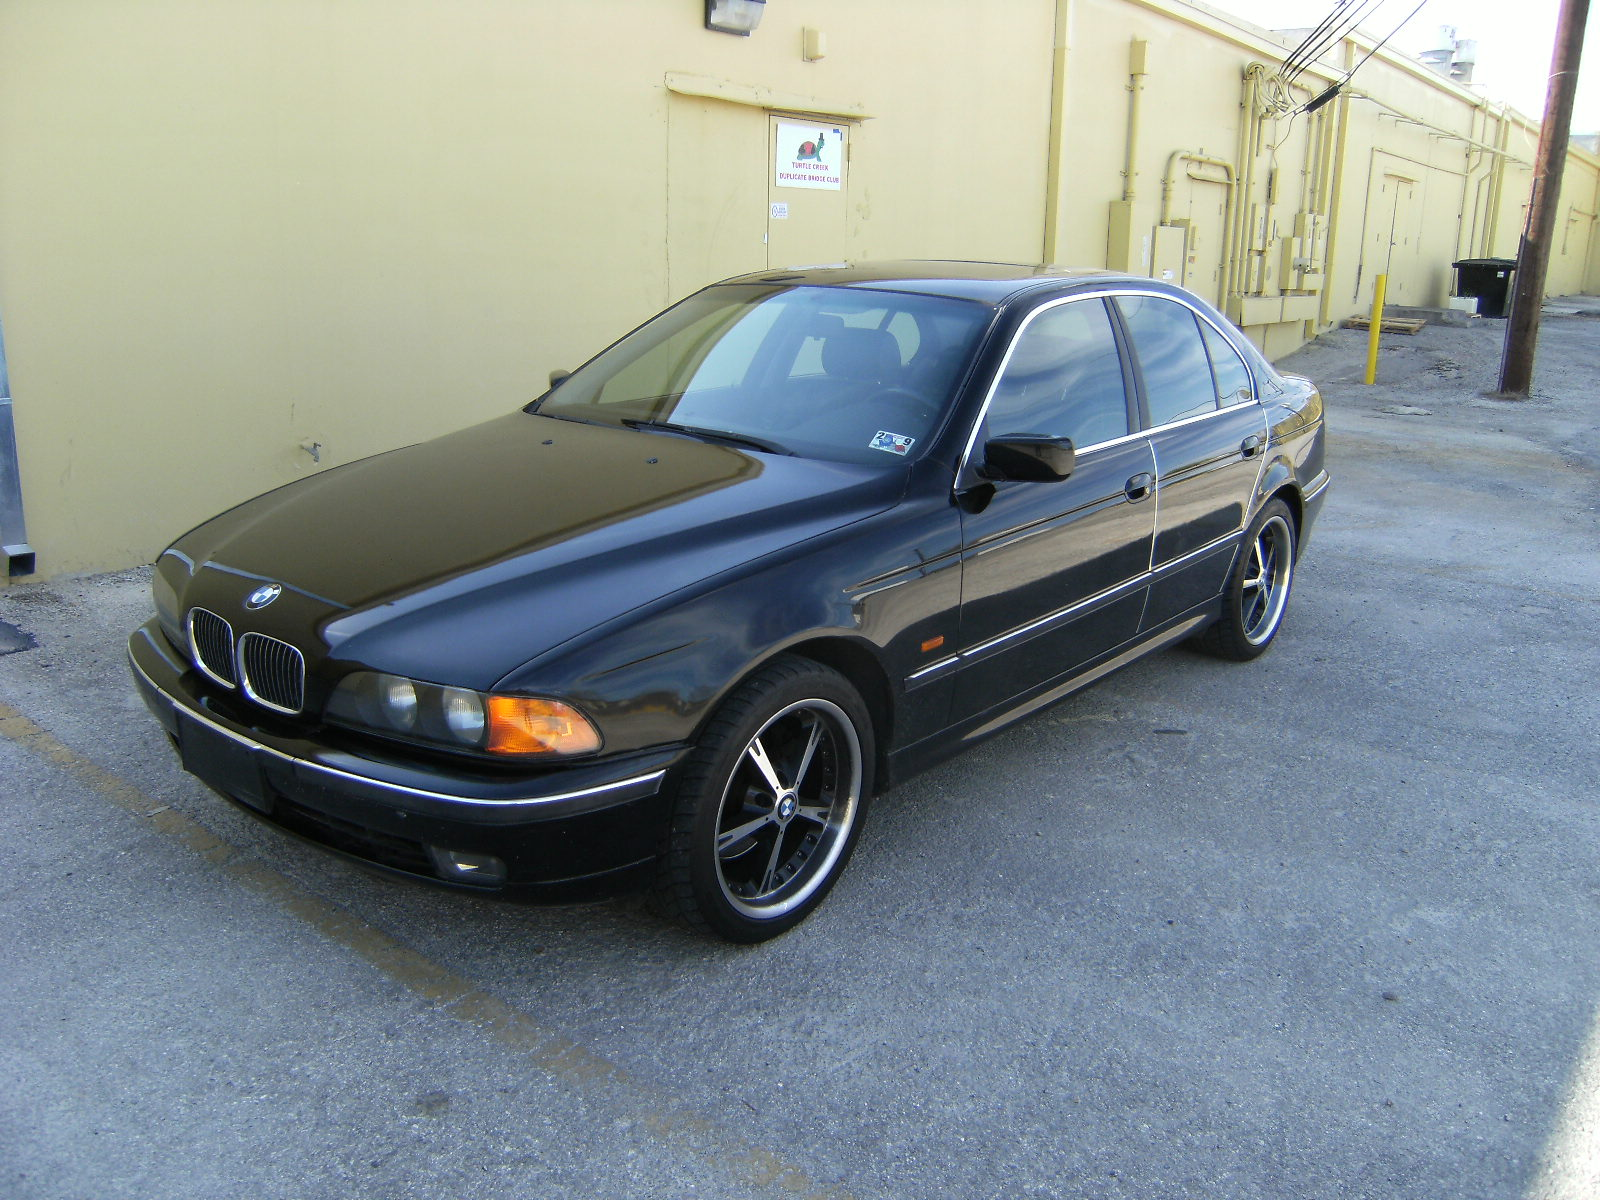 BMW 5 series 540i 1997 photo - 8